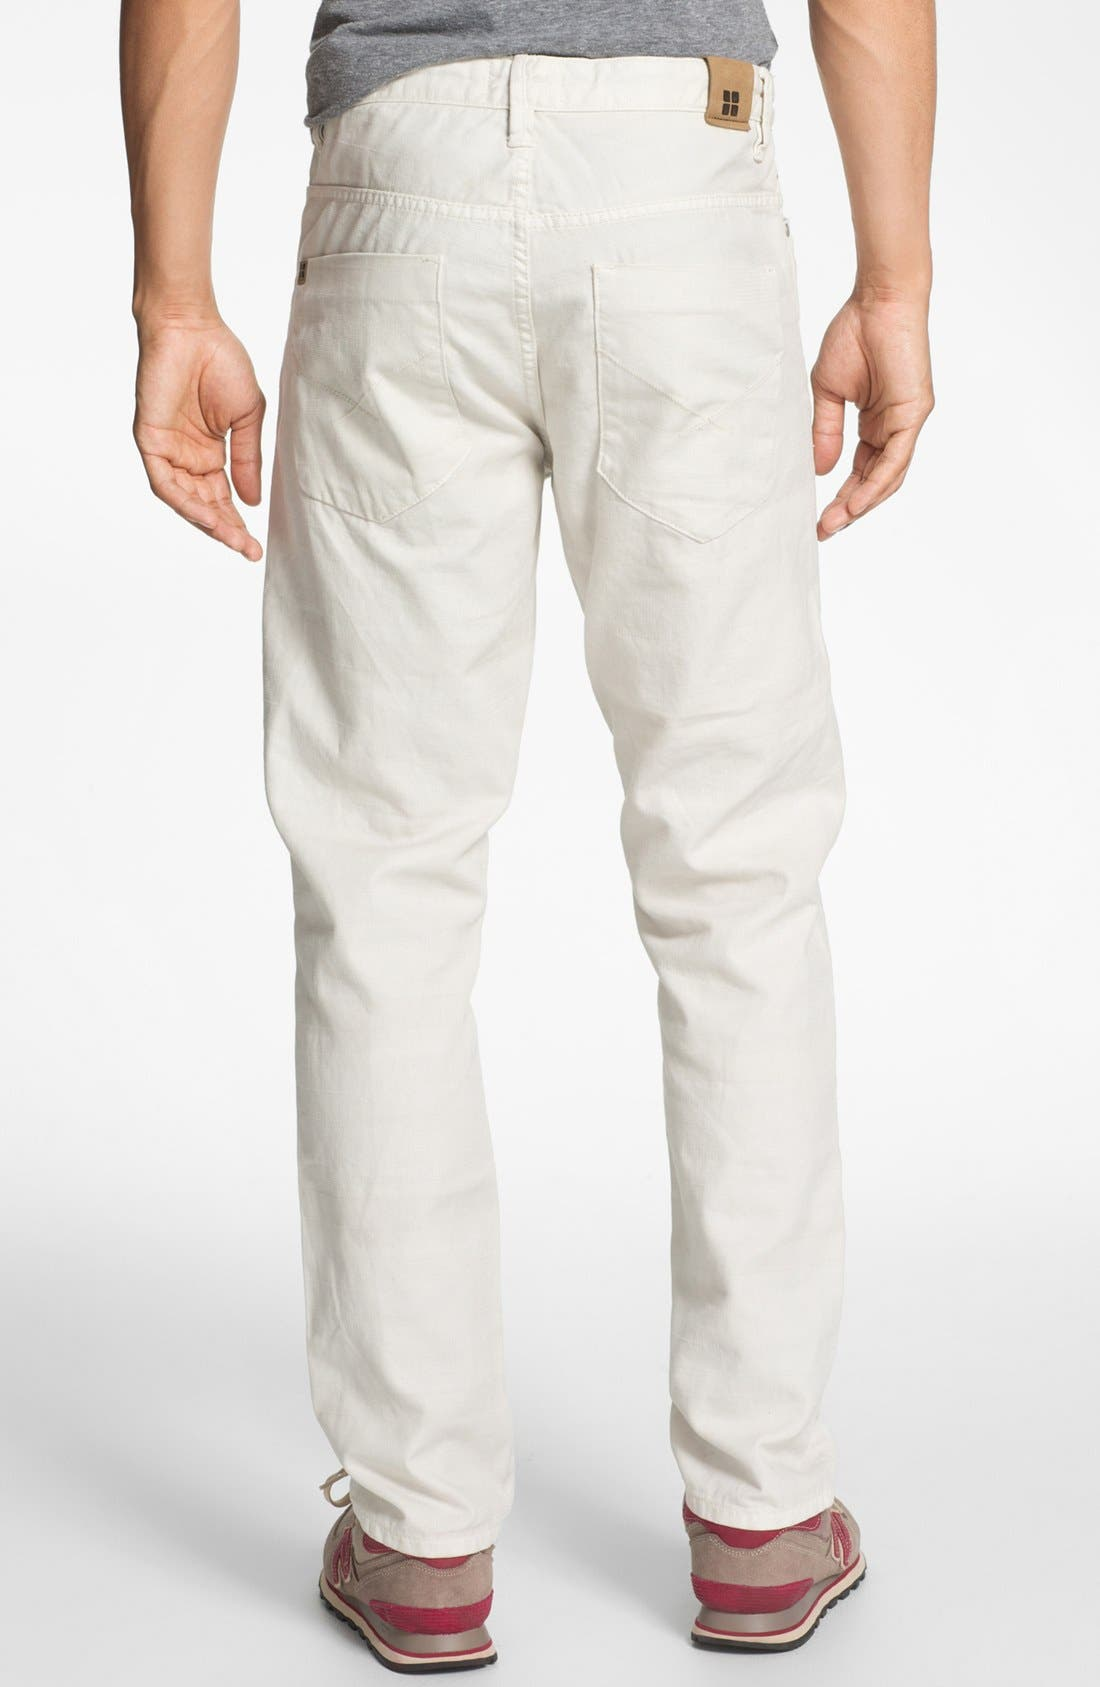 Main Image - Insight 'Loose Joints' Slim Leg Jeans (Stoned)